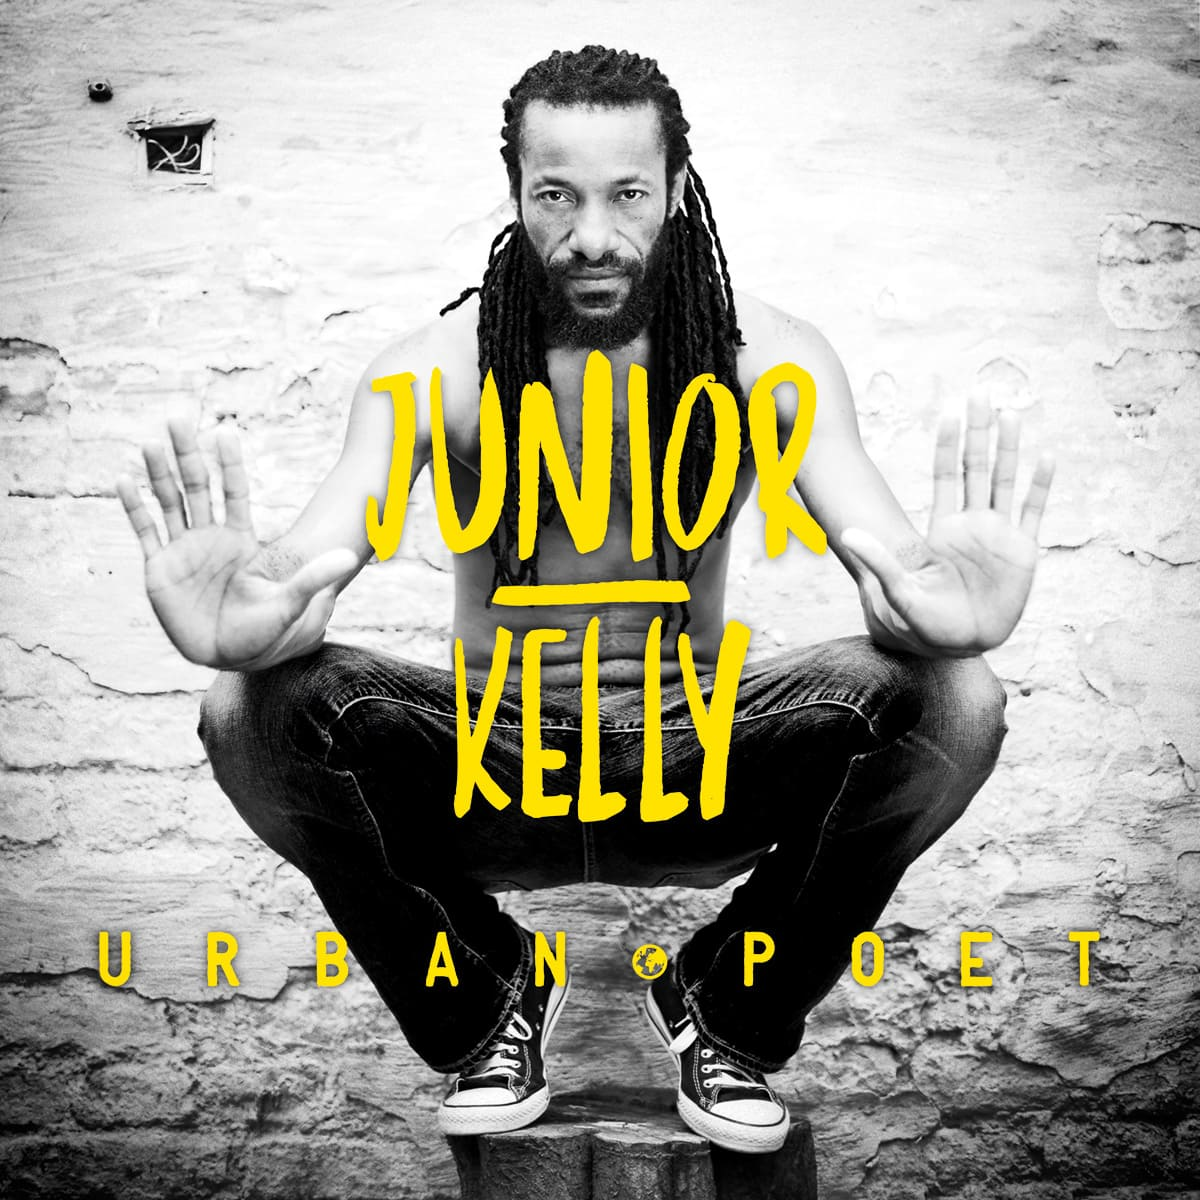 Junior Kelly Urban Poet Reggae Musiker